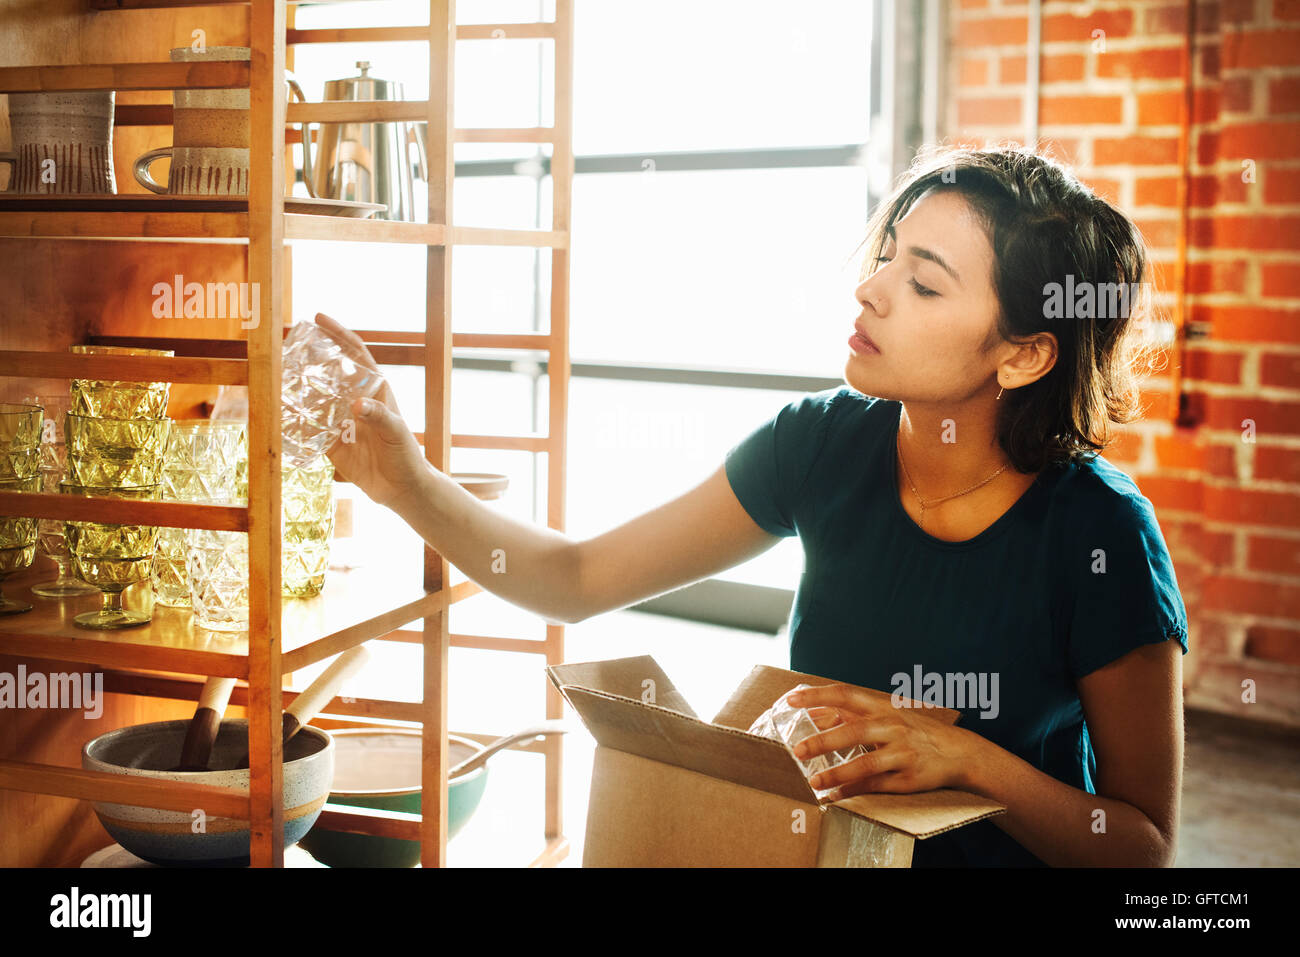 Young woman in a shop placing a drinking glass on a shelf - Stock Image